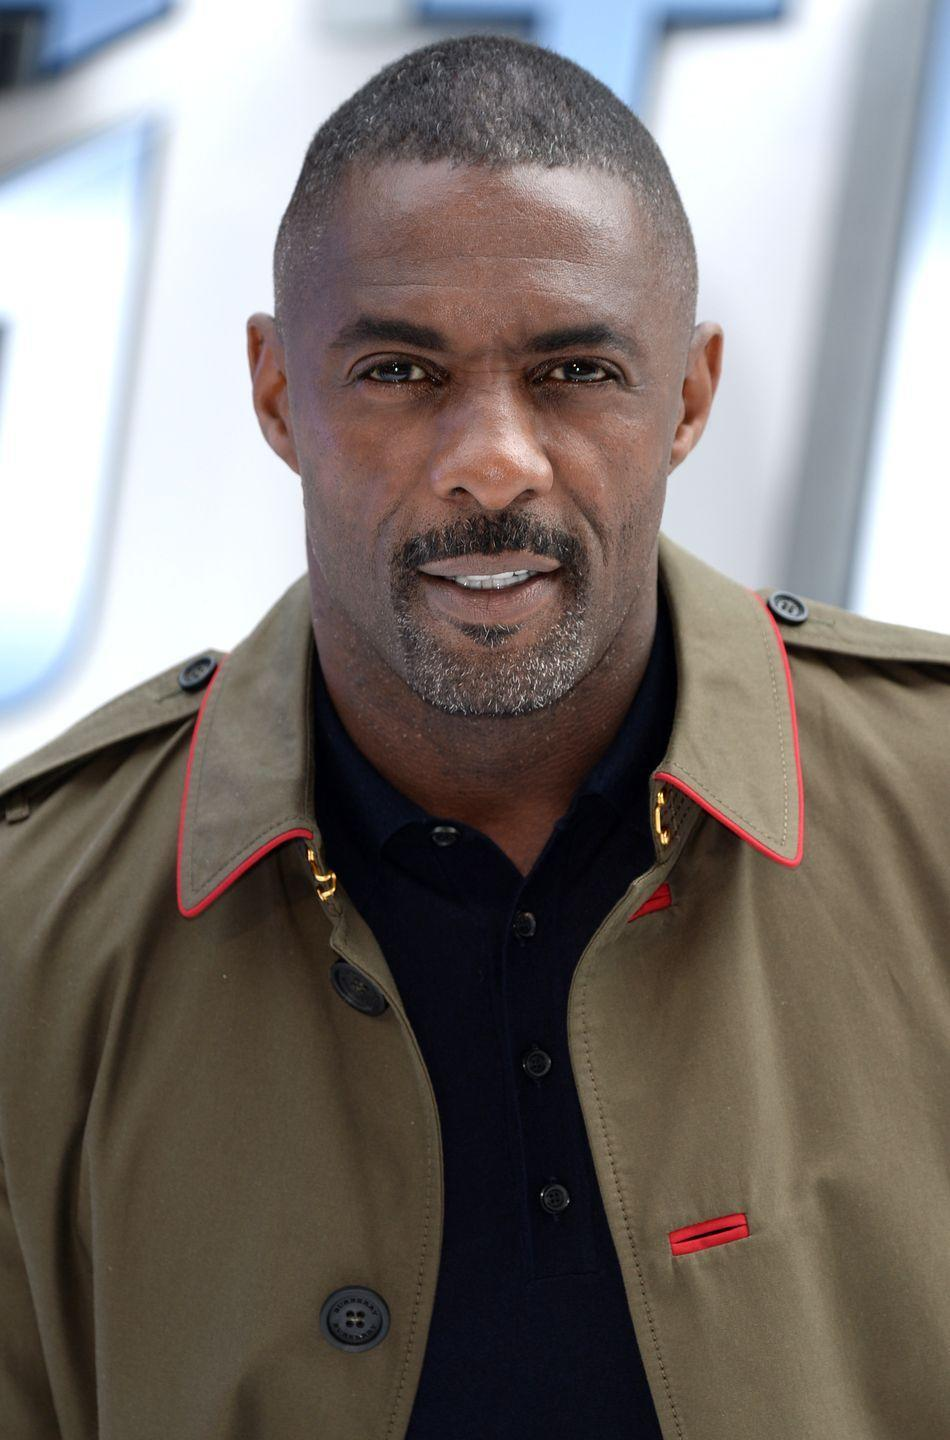 """<p>Afterwards, Elba transitioned predominantly to film work, with supporting roles in <em>The Reaping</em>, <em>28 Weeks Later,</em> and <em>American Gangster,</em> before his starring role alongside a certain Beyoncé Knowles-Carter in <em>Obsessed</em>. After that, it was blockbusters like <em>Thor,</em> <em>Avengers</em>, <em>Prometheus</em>, and <em>Pacific Rim</em>—and we'd be remiss to forget that he was <a href=""""https://people.com/movies/idris-elba-sexiest-man-alive-2018-reveal/"""" rel=""""nofollow noopener"""" target=""""_blank"""" data-ylk=""""slk:People's Sexiest Man Alive in 2018"""" class=""""link rapid-noclick-resp""""><em>People's</em> Sexiest Man Alive in 2018</a>. </p>"""